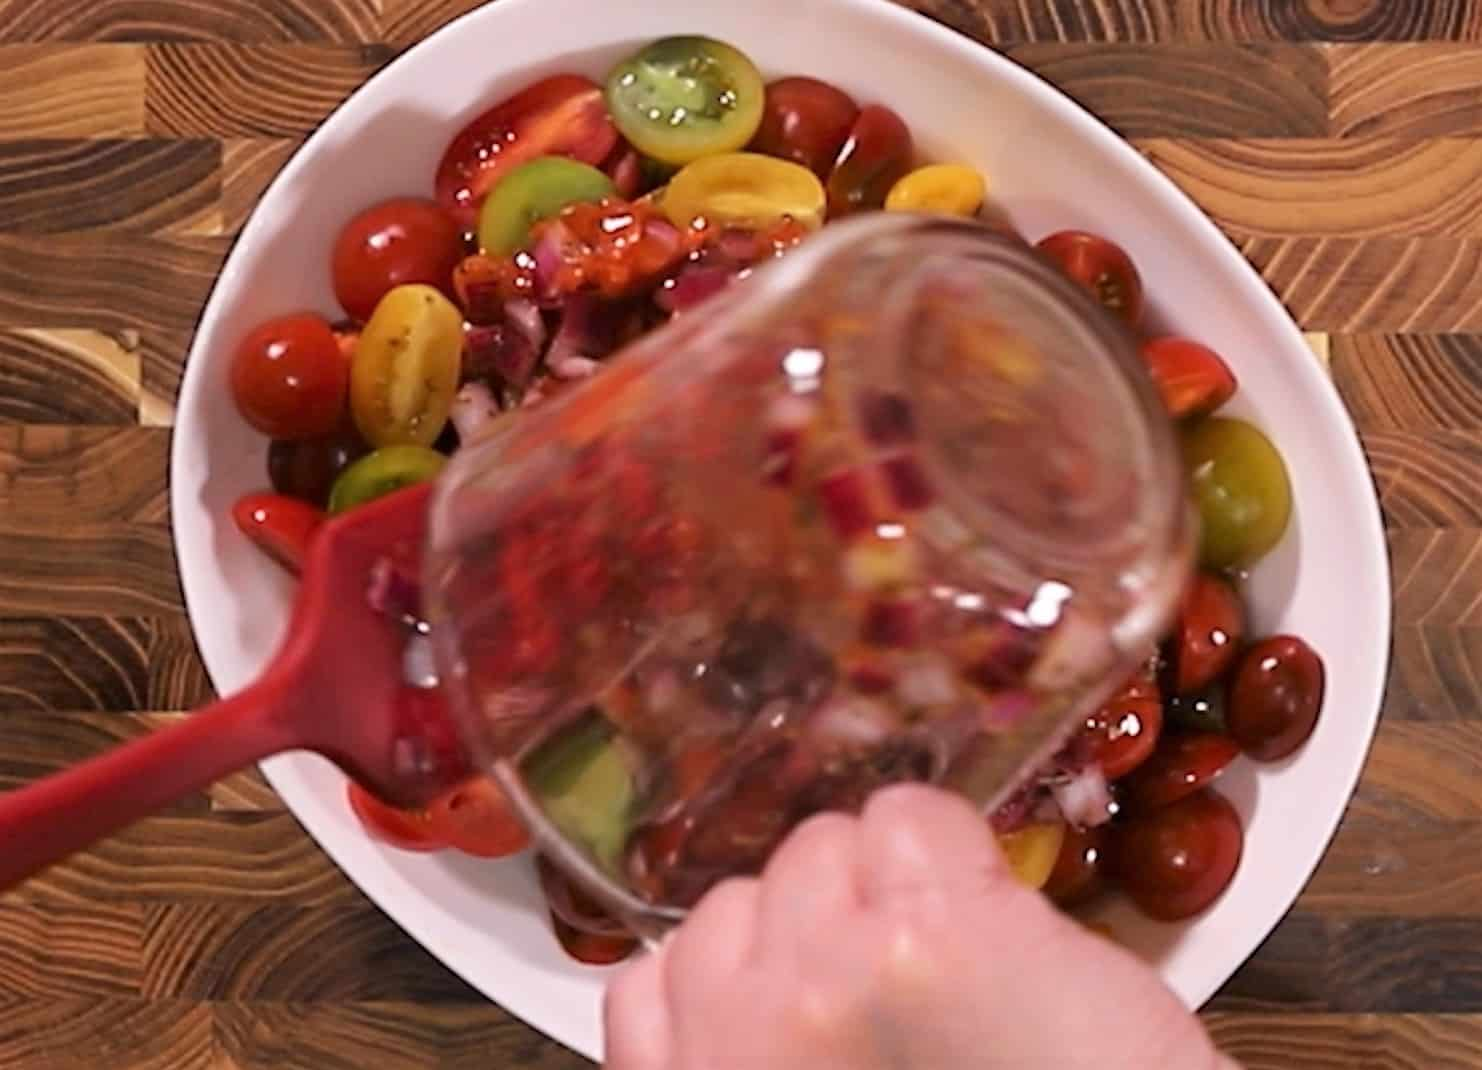 Sliced tomatoes in white serving dish with a glass measuring cup pouring marinade over the tomatoes.